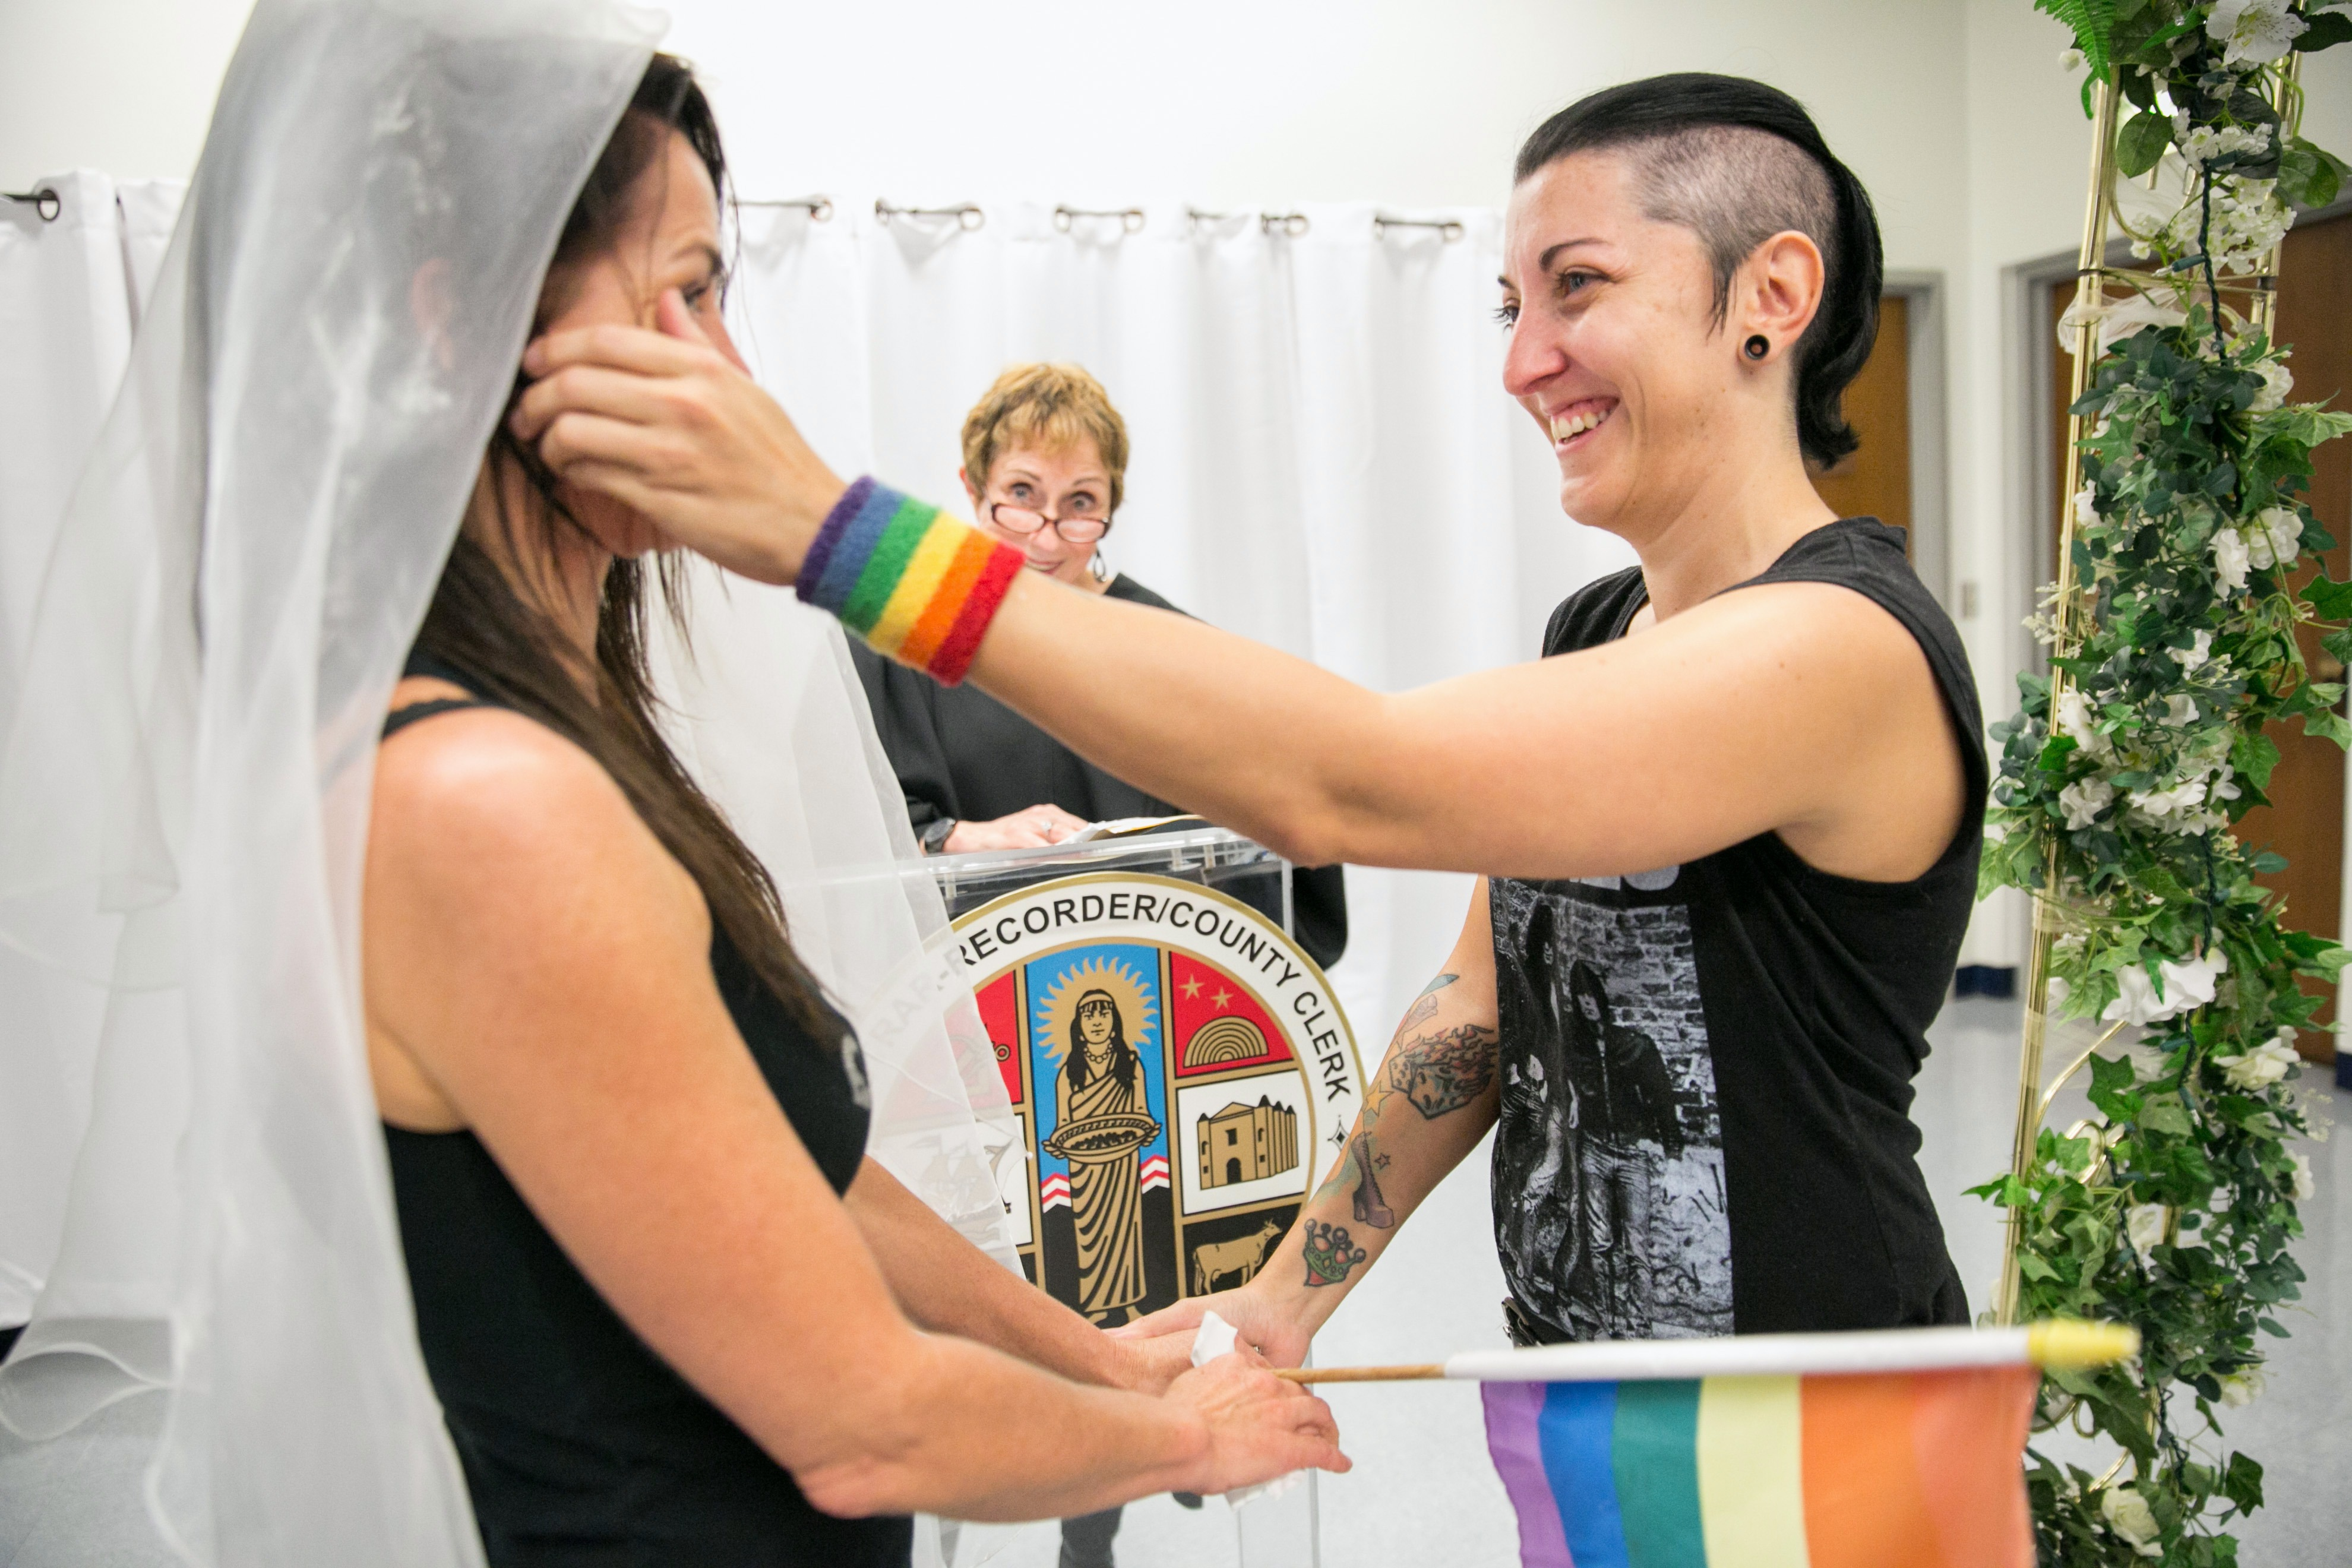 BEVERLY HILLS, CA - JUNE 26: Natalie Novoa (R) wipes the tears off her partner Eddie Daniels' cheeks during their wedding ceremony at the L.A. County Registrars office on June 26, 2015 in Beverly Hills, California. The couple have been together for the past 11 years and have been waiting to wed this auspicious day. In a landmark 5-4 decision, the U.S. Supreme Court ruled that same-sex couples have a constitutional right to marry in all 50 states. (Photo by Marcus Yam/Los Angeles Times via Getty Images)